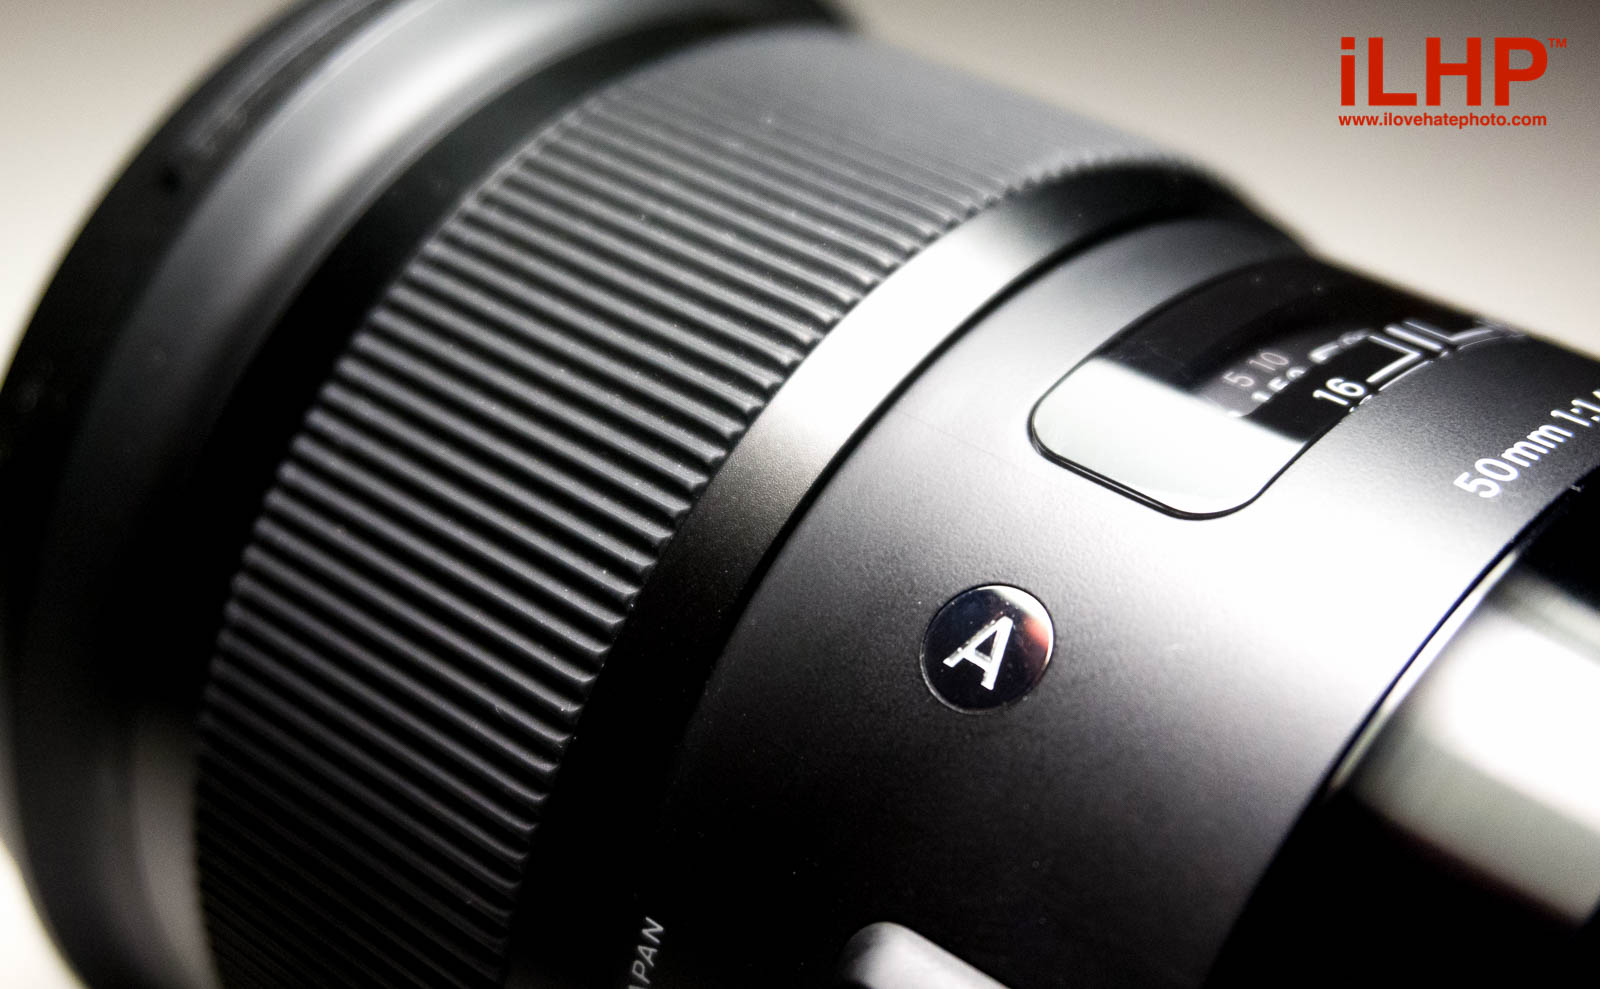 sigma 50mm f1.4 art build quality